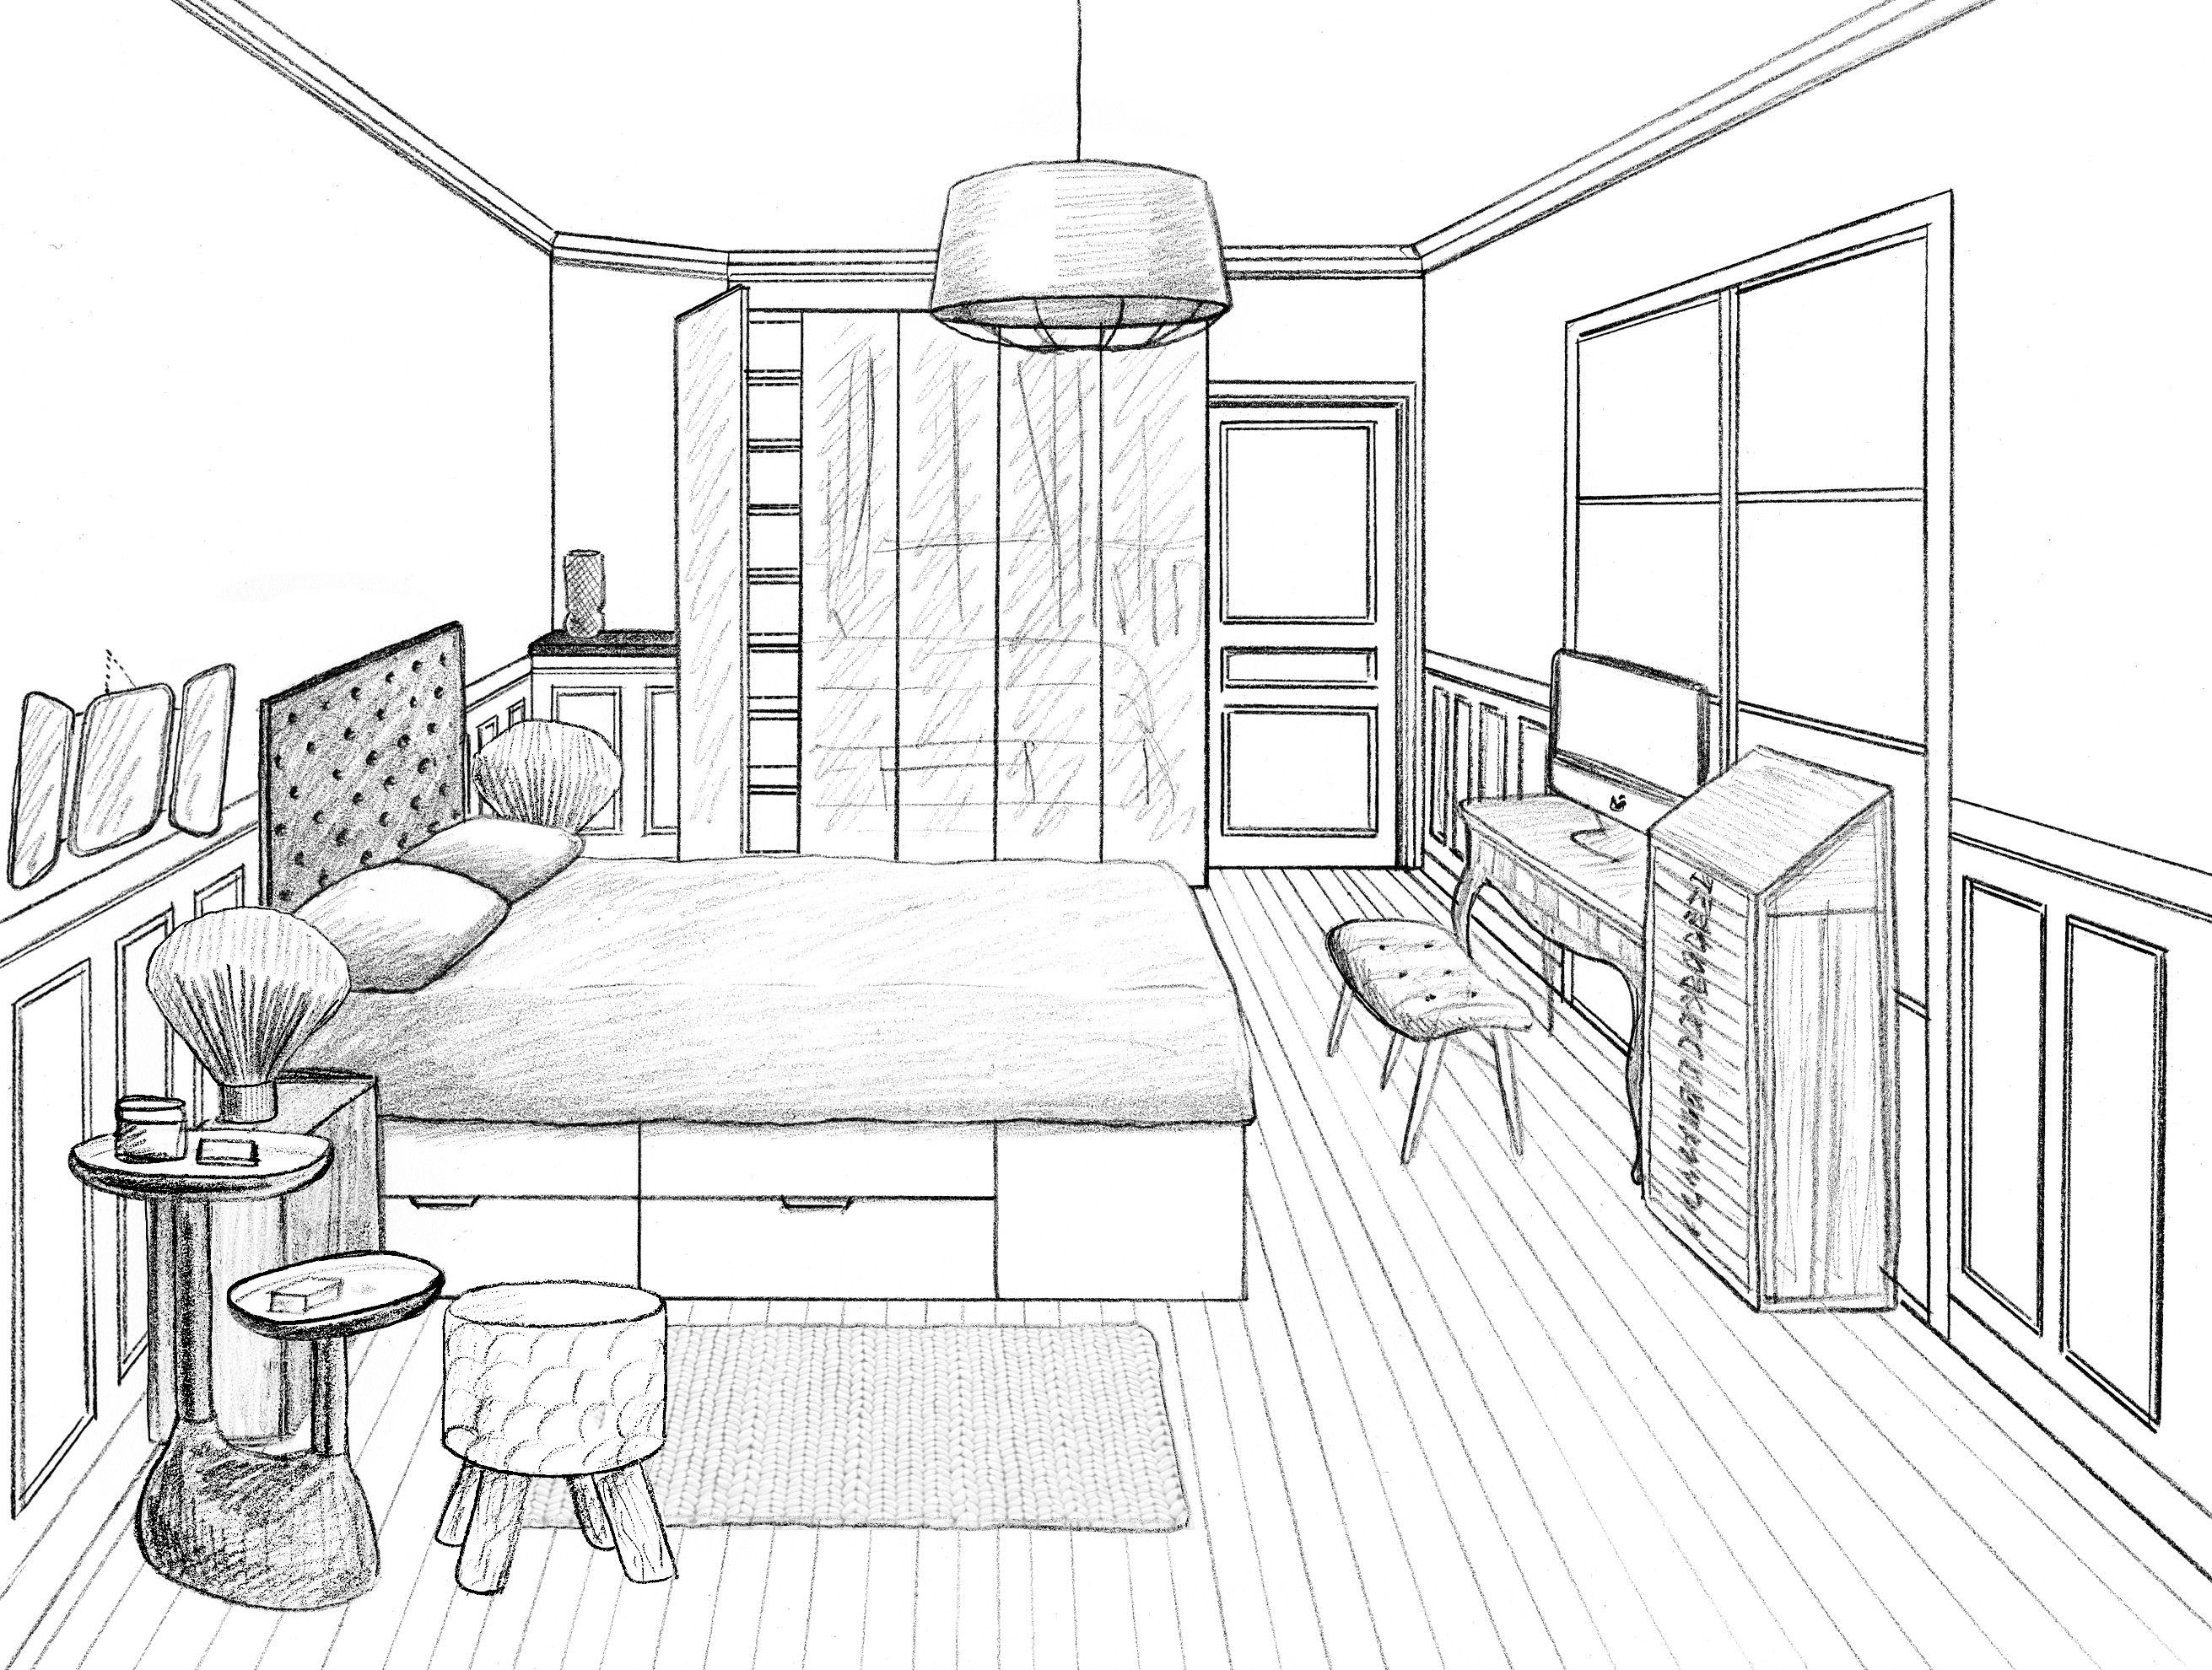 dessins de maisons en perspective fantaisie image dessin chambre en perspective dessin chambre. Black Bedroom Furniture Sets. Home Design Ideas